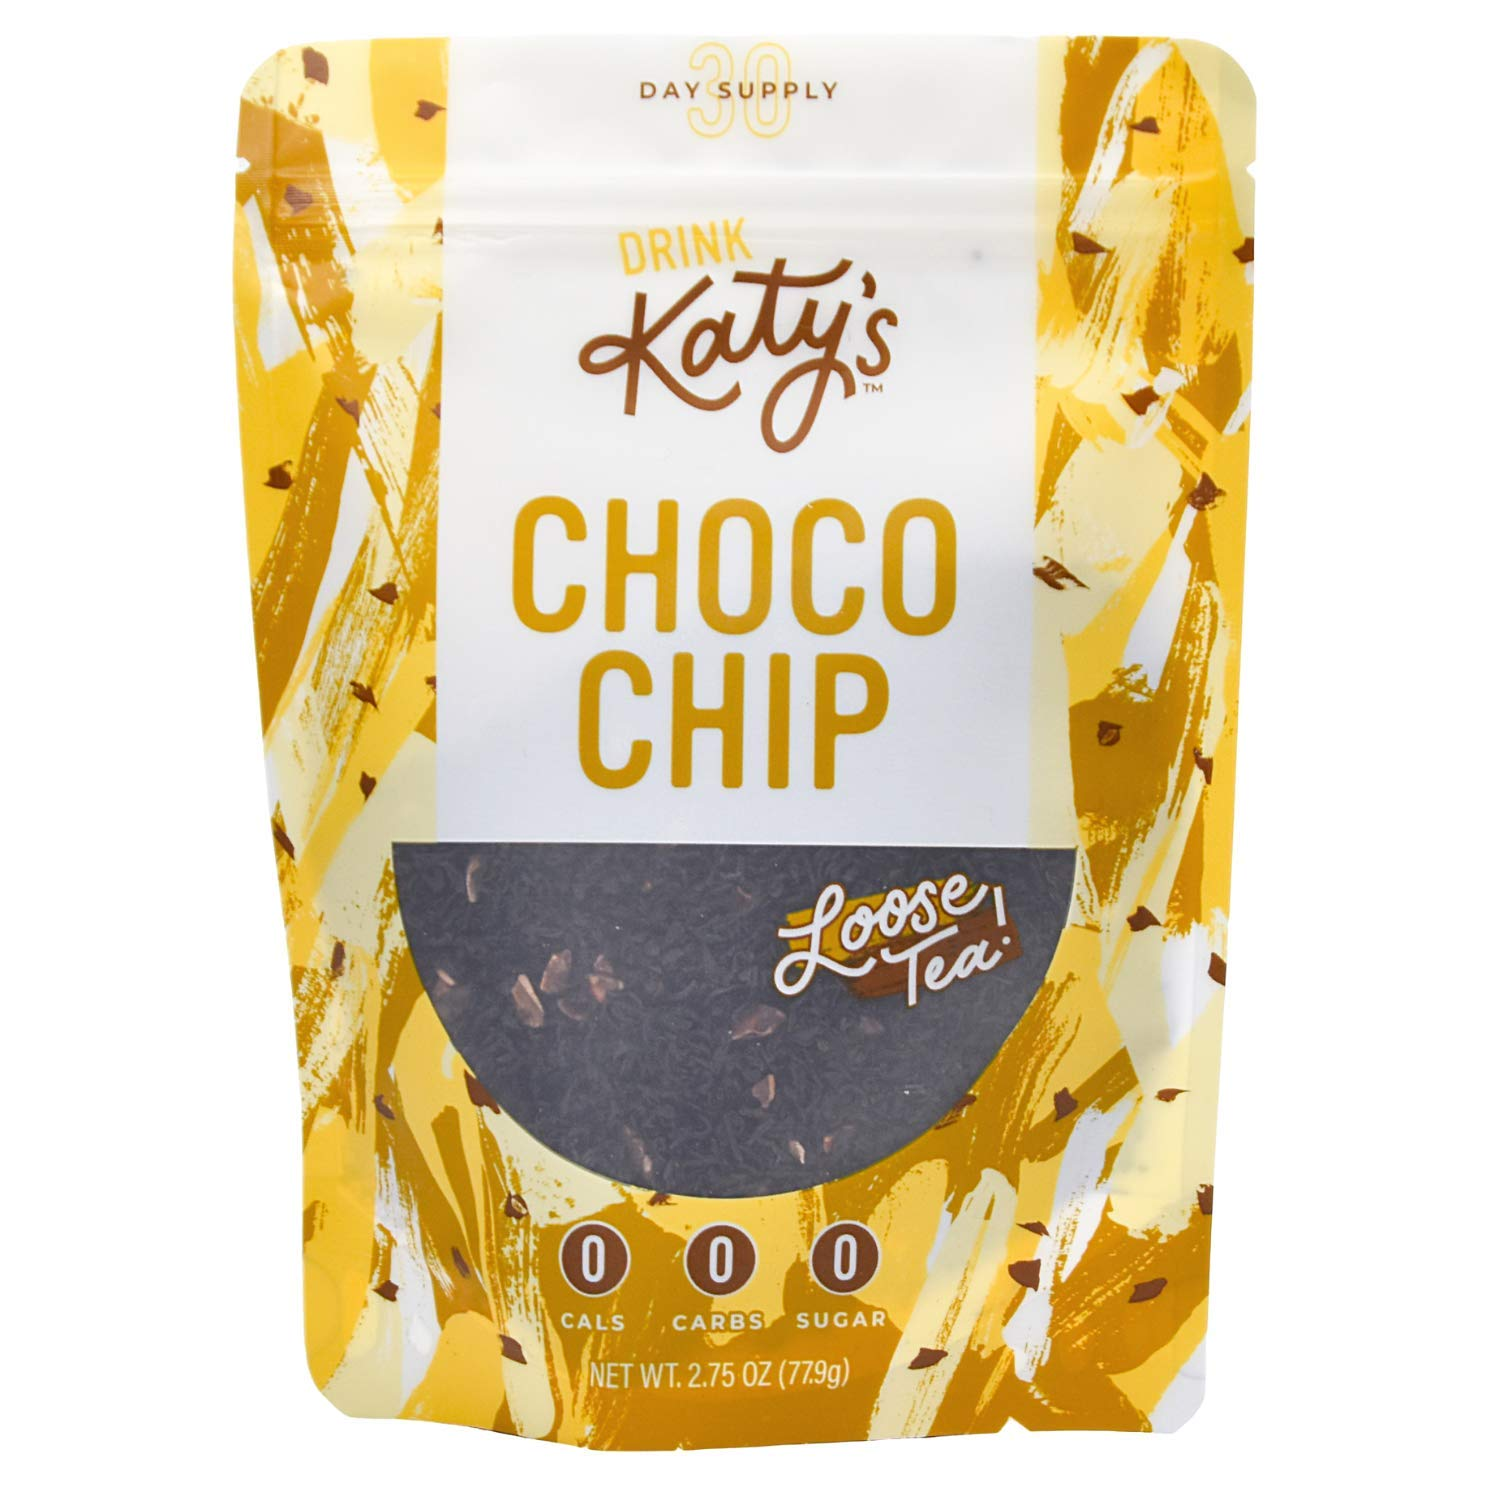 Katy's Choco Chip Tea - Chocolate Loose Leaf Black Tea (30 Day Supply, 60 Tsps) Sugar Free, Dairy Free - Coffee Replacement, Delicious Dessert Flavor, Hot or Iced